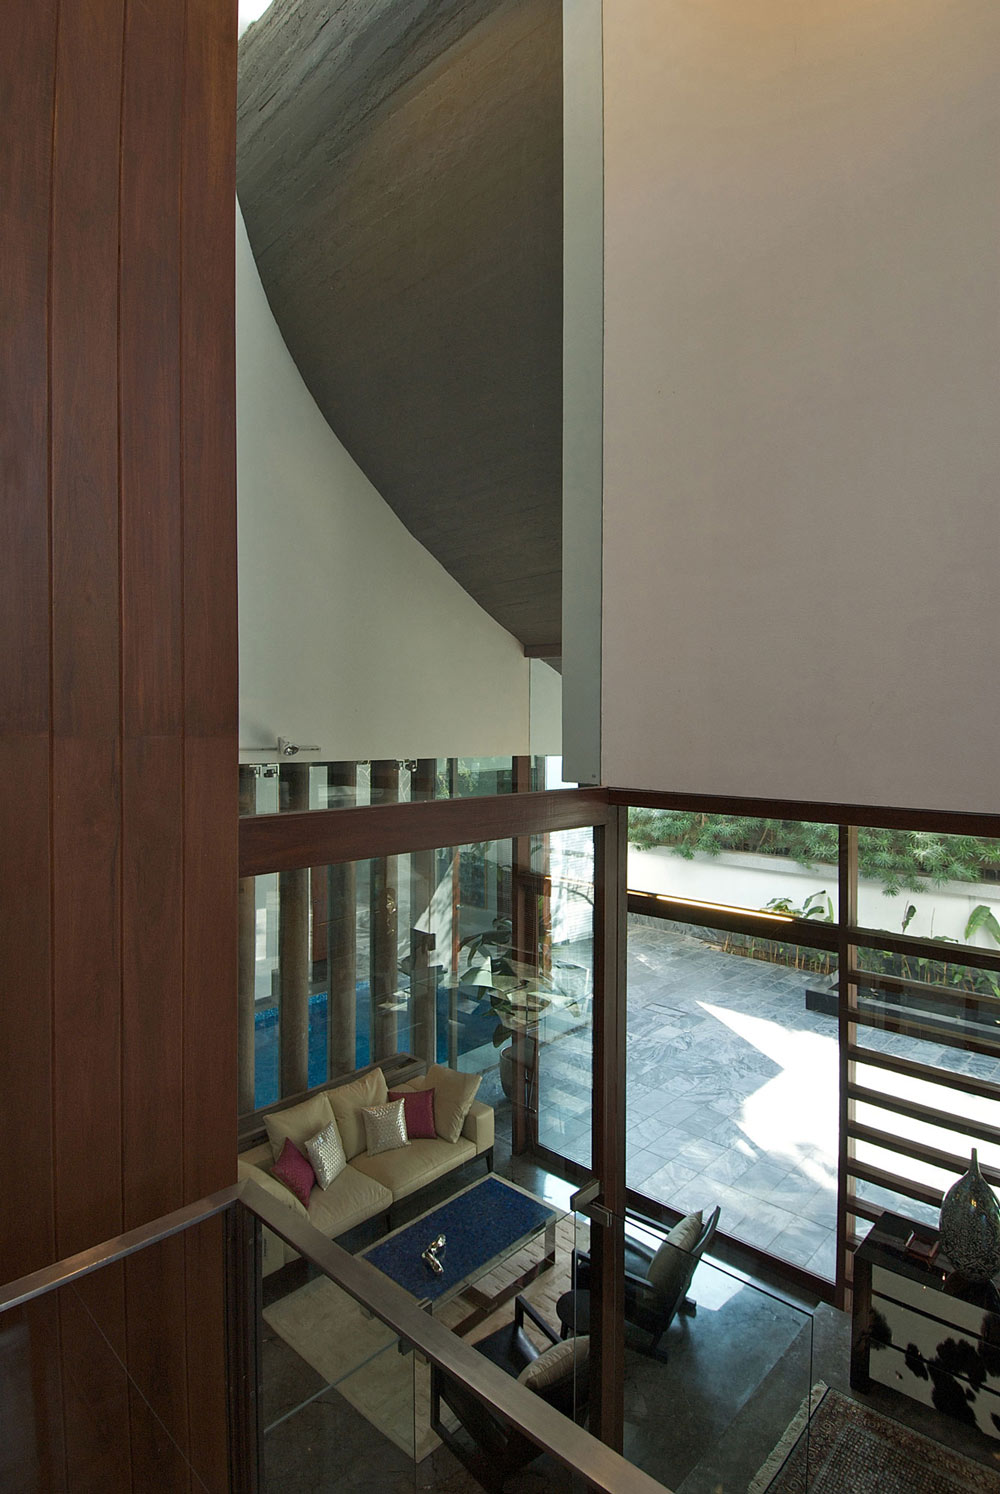 Living Space, Poona House in Mumbai, India by Rajiv Saini